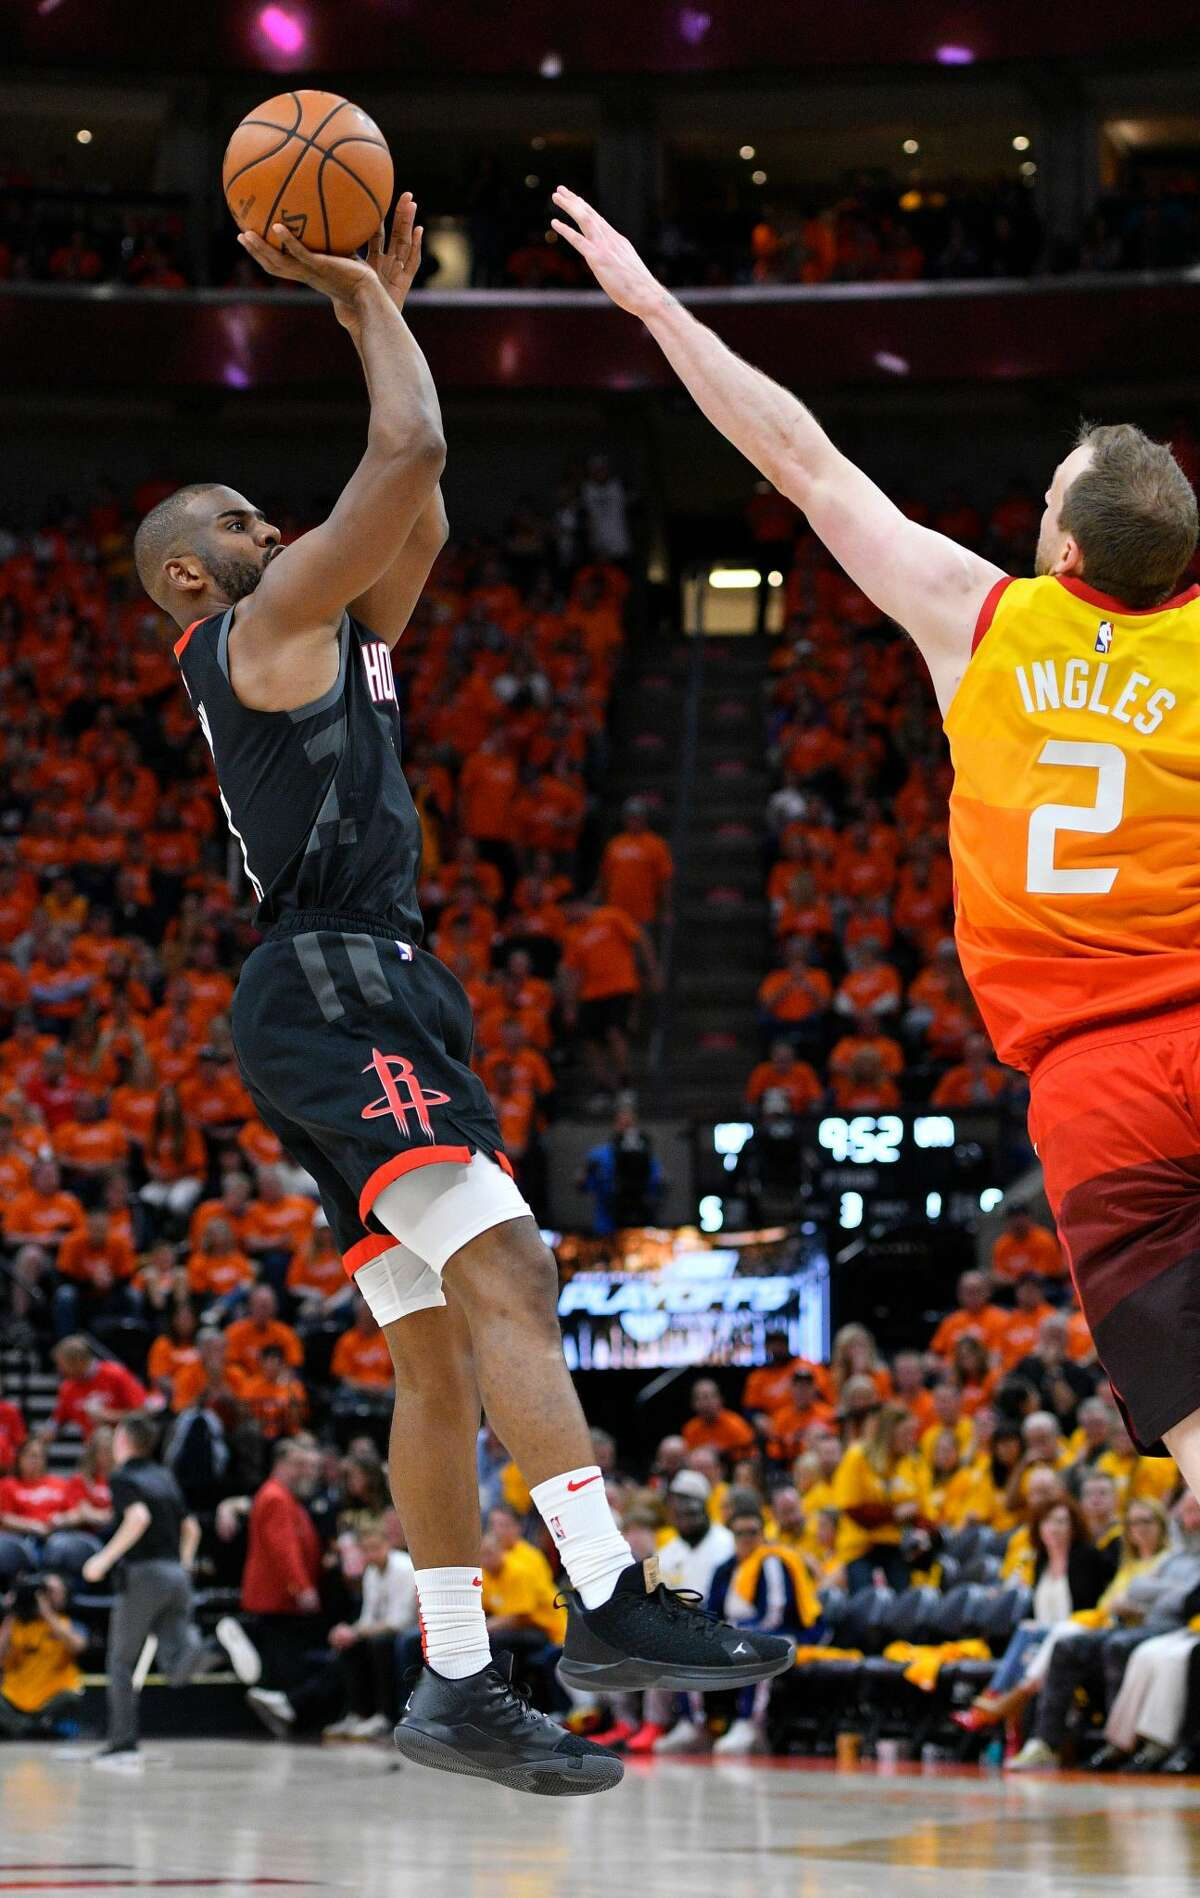 SALT LAKE CITY, UT - APRIL 20: Chris Paul #3 of the Houston Rockets shoots a three point basket over Joe Ingles #2 of the Utah Jazz in the second half of Game Three during the first round of the 2019 NBA Western Conference Playoffs at Vivint Smart Home Arena on April 20, 2019 in Salt Lake City, Utah. NOTE TO USER: User expressly acknowledges and agrees that, by downloading and or using this photograph, User is consenting to the terms and conditions of the Getty Images License Agreement. (Photo by Gene Sweeney Jr./Getty Images)